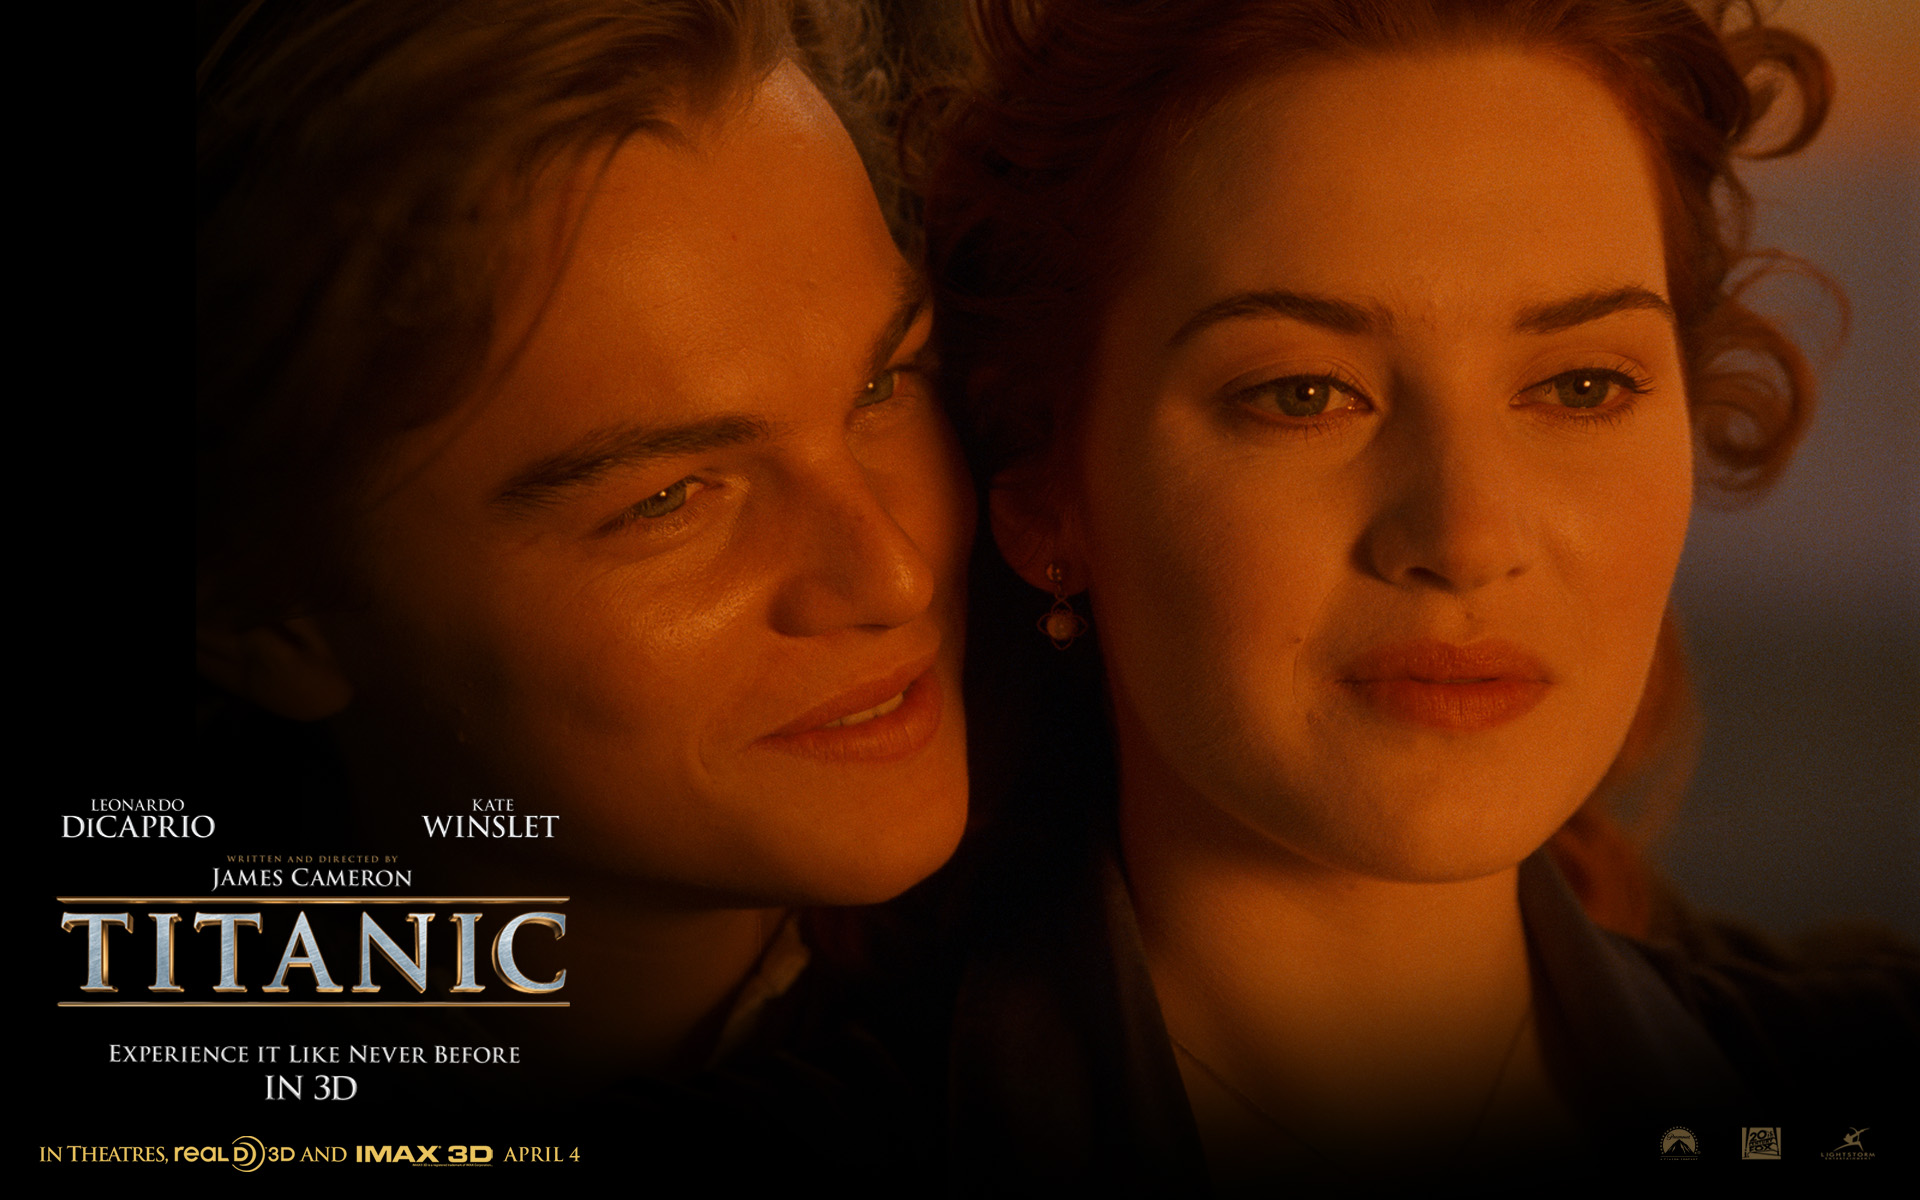 Titanic images Titanic 3D Movie Walpapers HD wallpaper and 1920x1200